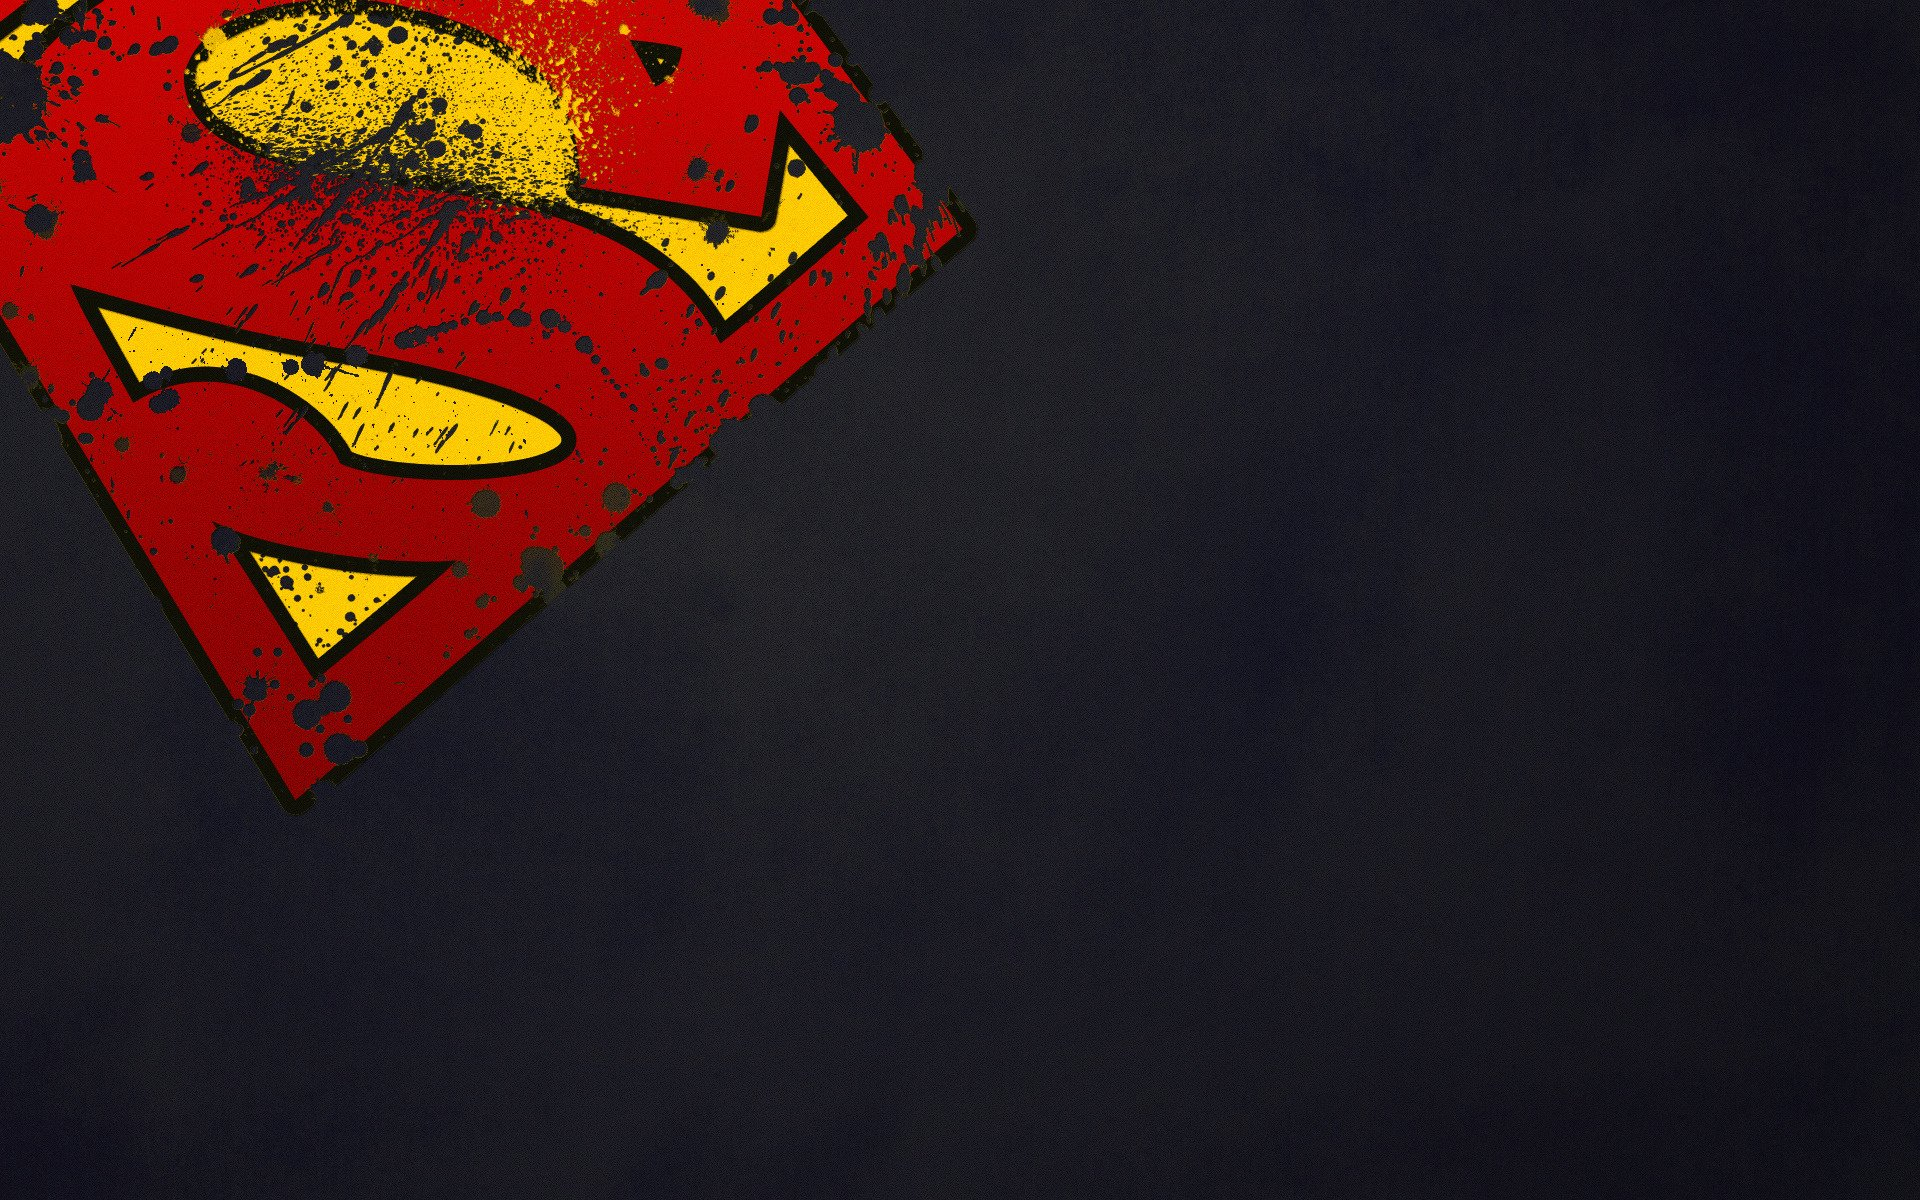 superman logo symbol superhero wallpaper   ForWallpapercom 1920x1200